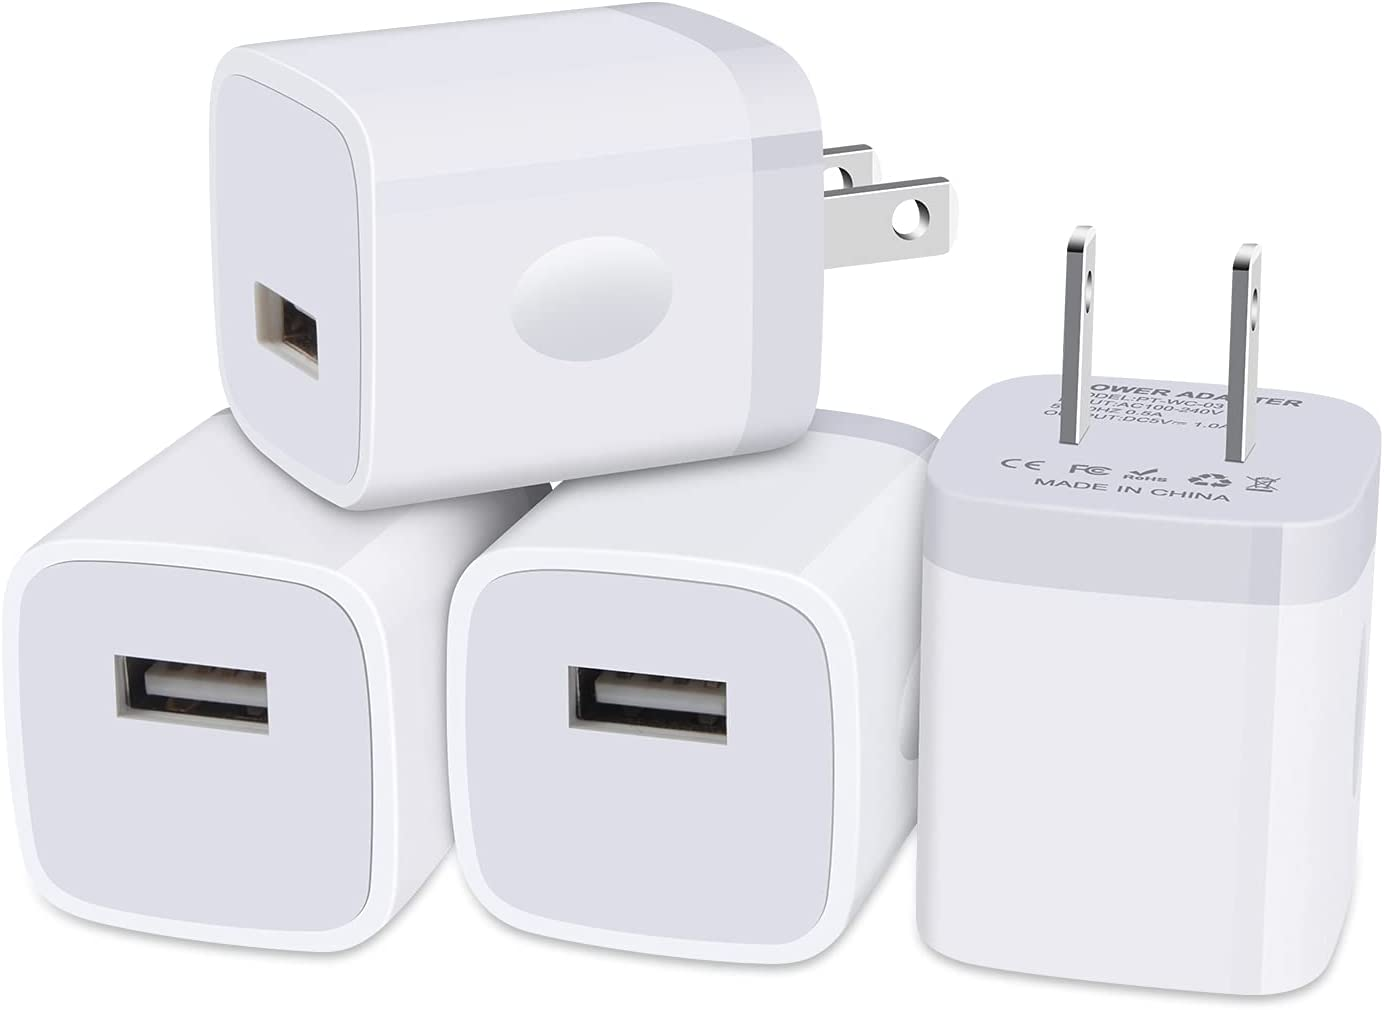 iPhone Charger Block, Plug in Phone Charger, Sicodo 4Pack Single Port USB Wall Charger Fast Charging Adapter Cube Box for iPhone 12 SE(2020) 11/11pro/XS/XS Max/XR/X, Samsung Galaxy S21/S20+/10, LG